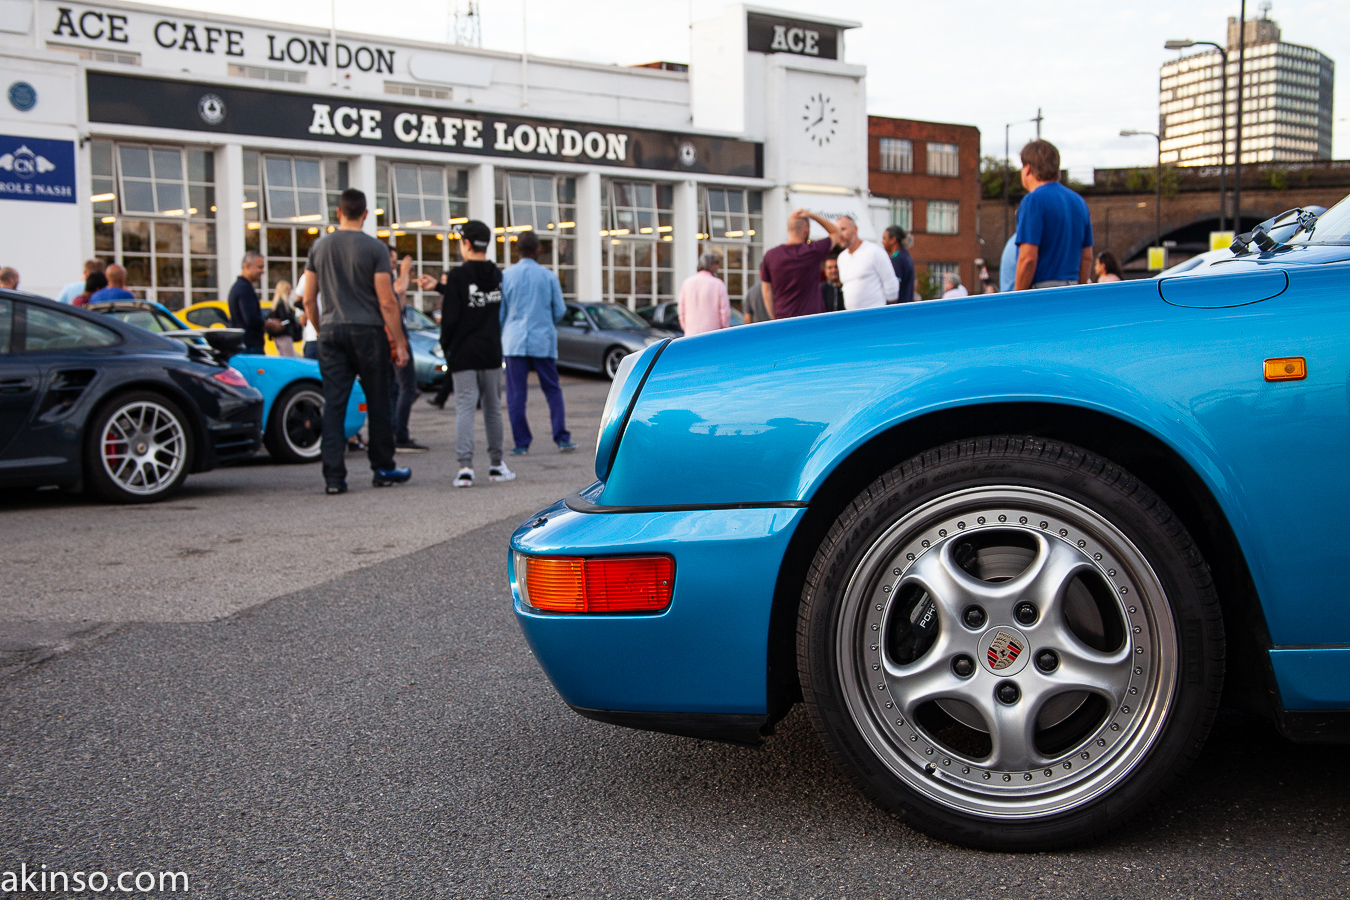 Porsche Night at The Ace Cafe – A Pictorial